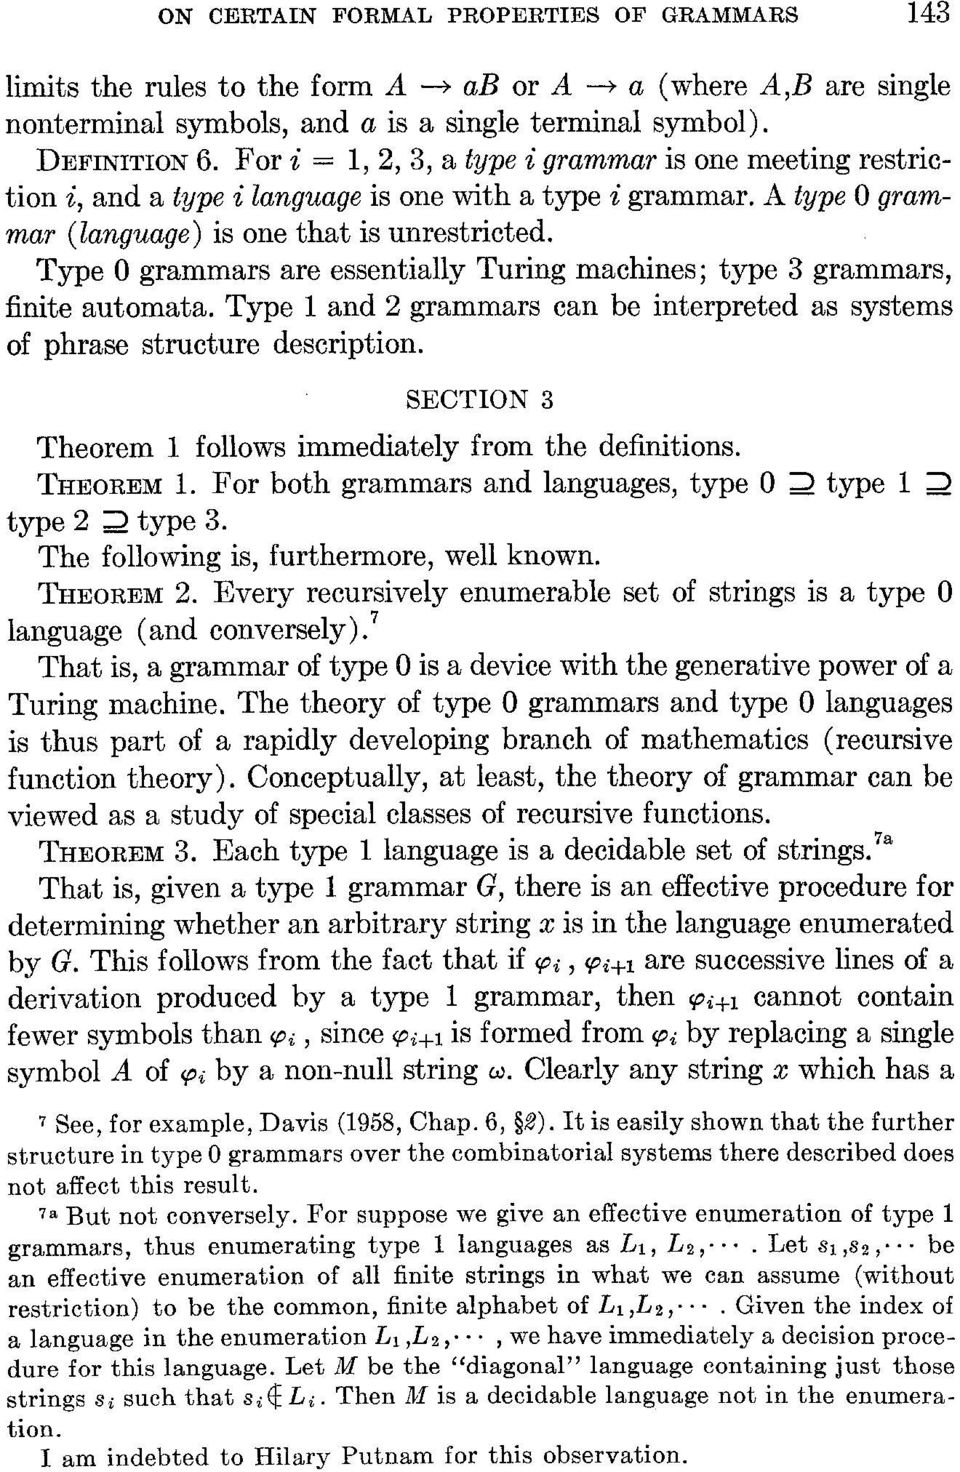 Type 0 grammars are essentially Turing machines; type 3 grammars, finite automata. Type 1 and 2 grammars can be interpreted as systems of phrase structure description.